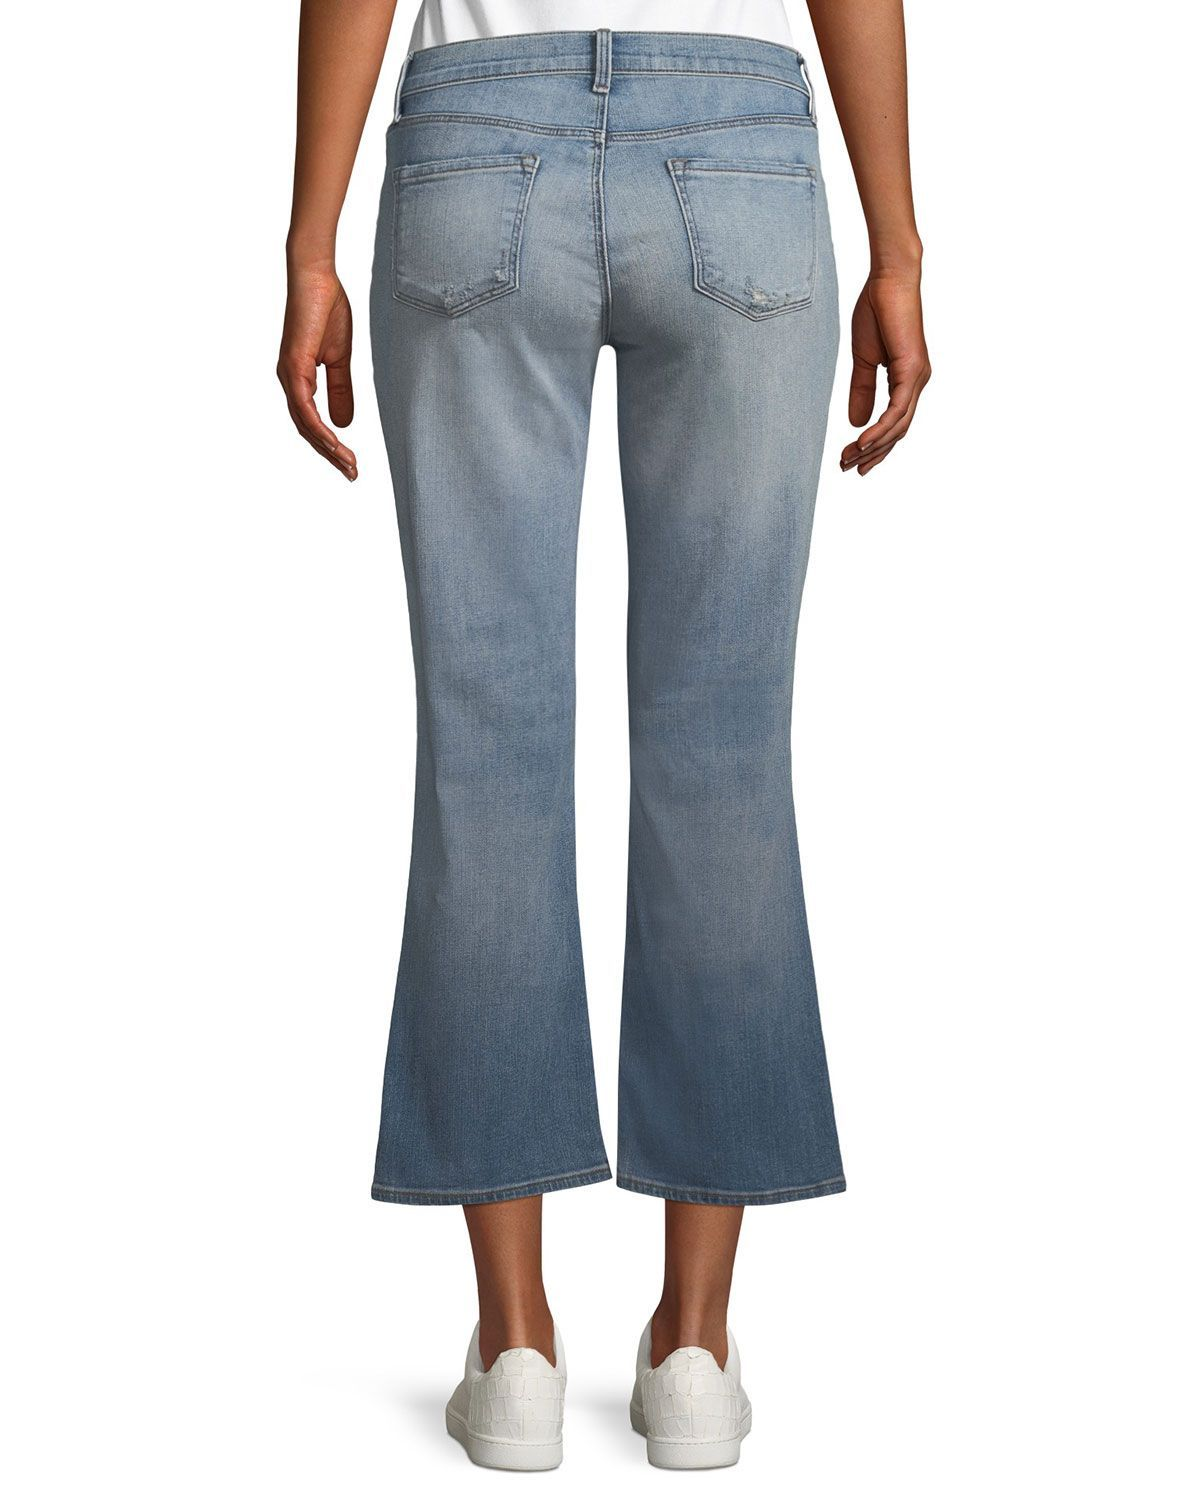 71720e4772dc7 J Brand Selena Distressed Cropped Boot-Cut Jeans  MensJeans White Outfit  For Men